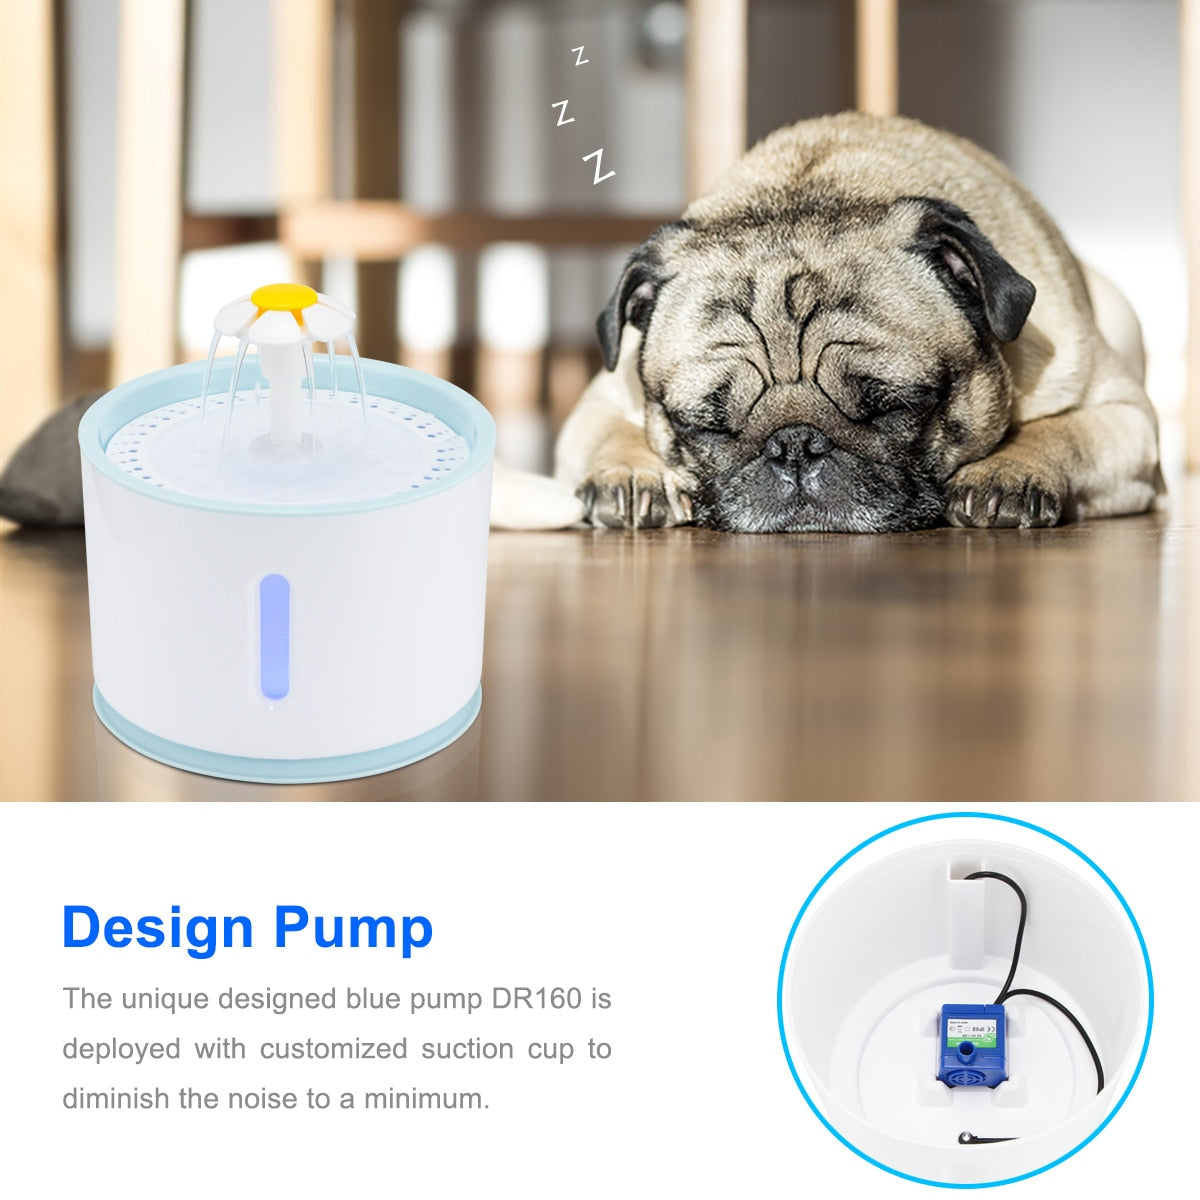 Cat water fountain pump is relatively quiet, image showing dog sleeping peacefully